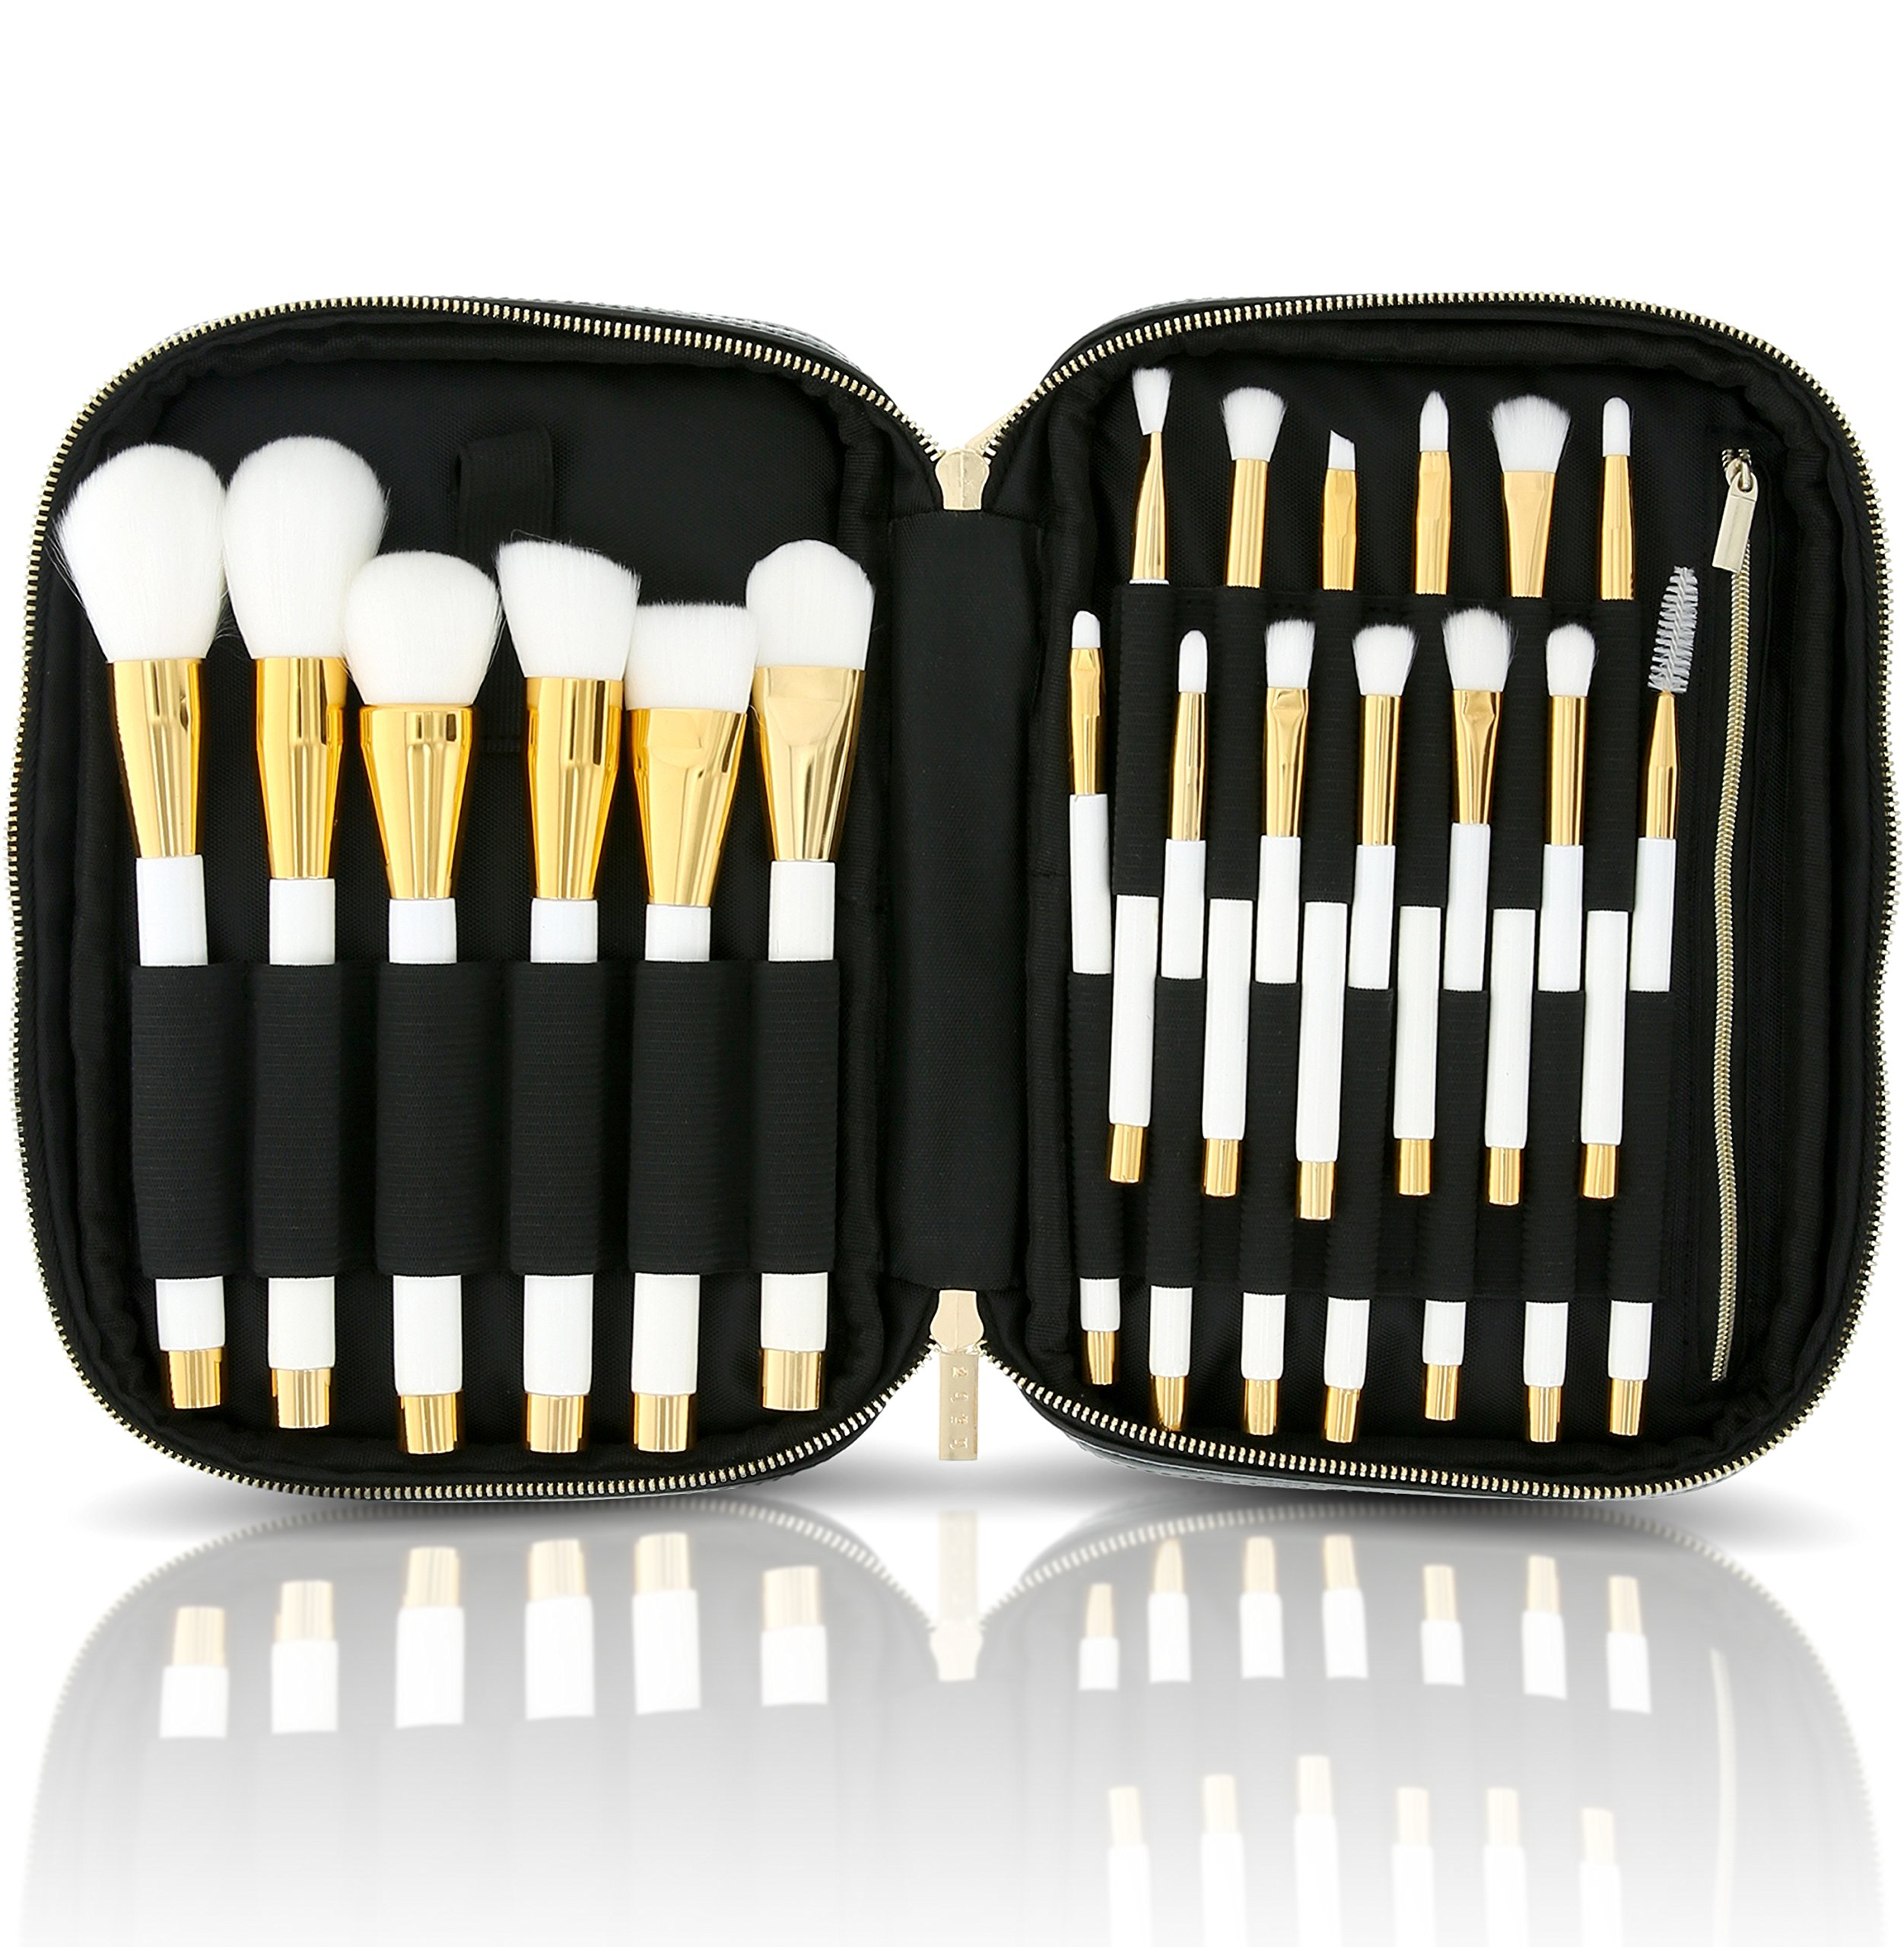 1a31043f41 Get Quotations · habe Makeup Brush Organizer Bag - Travel Case w  20  Stretchy Brush Holders - Fits